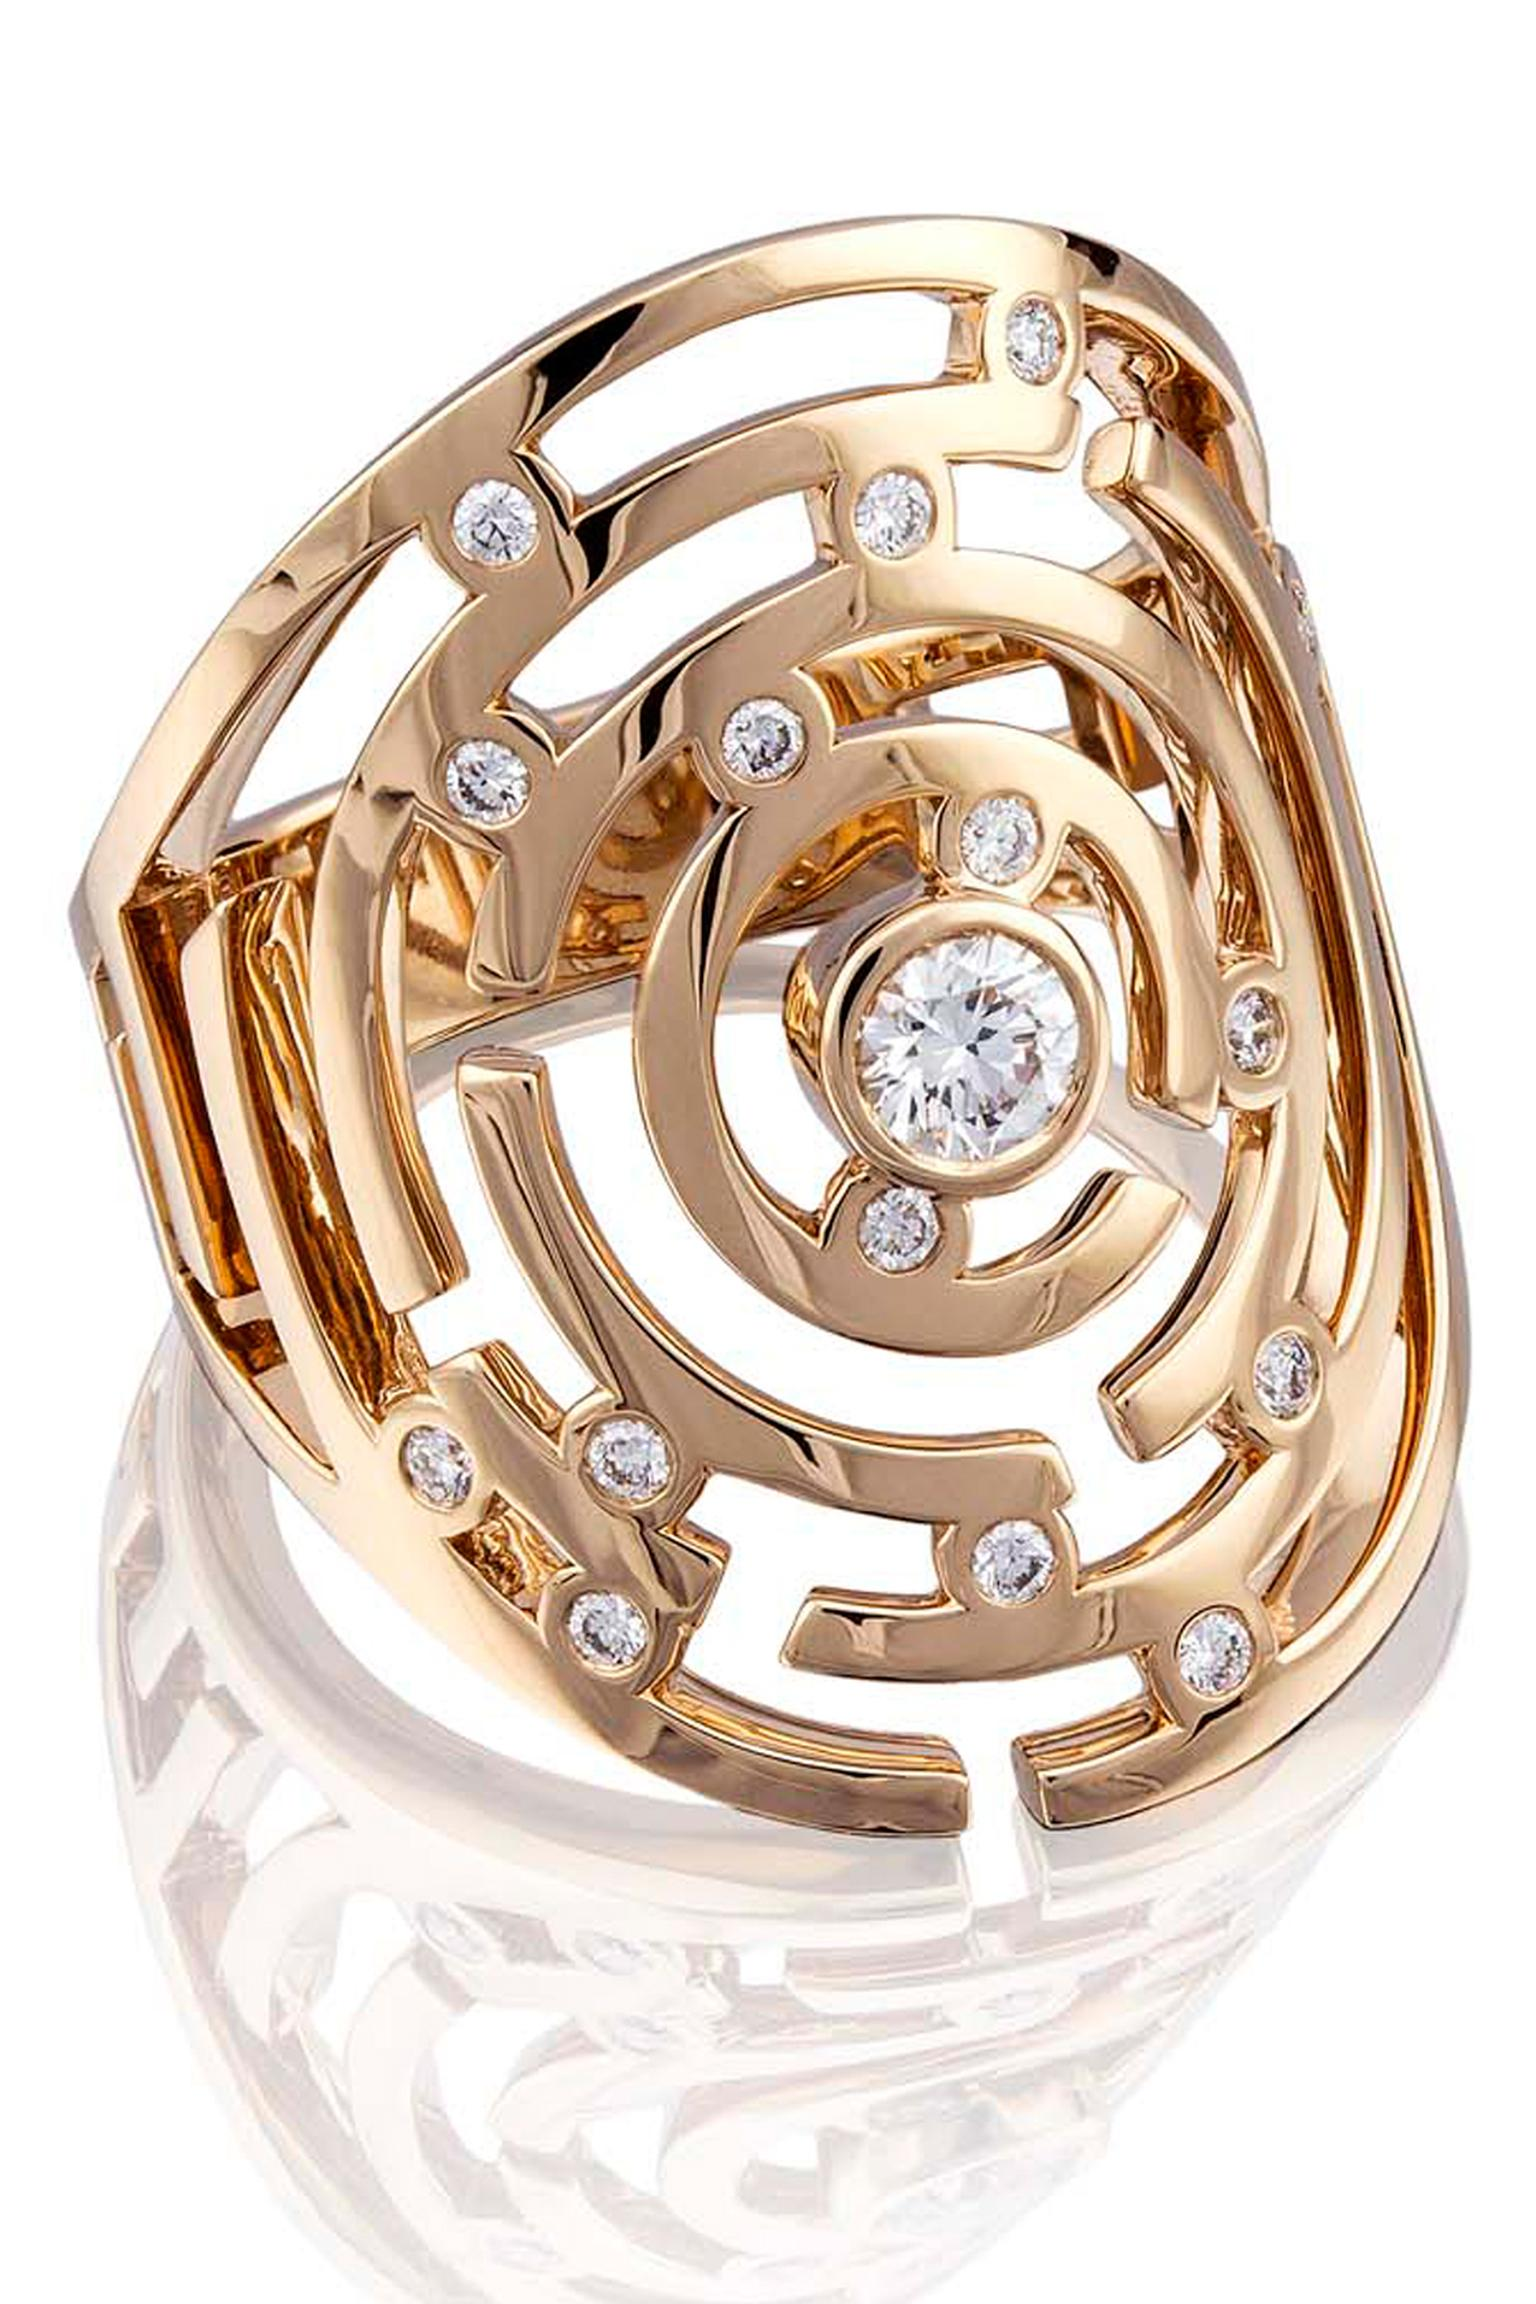 Boodles Maze collection large diamond ring in rose gold.